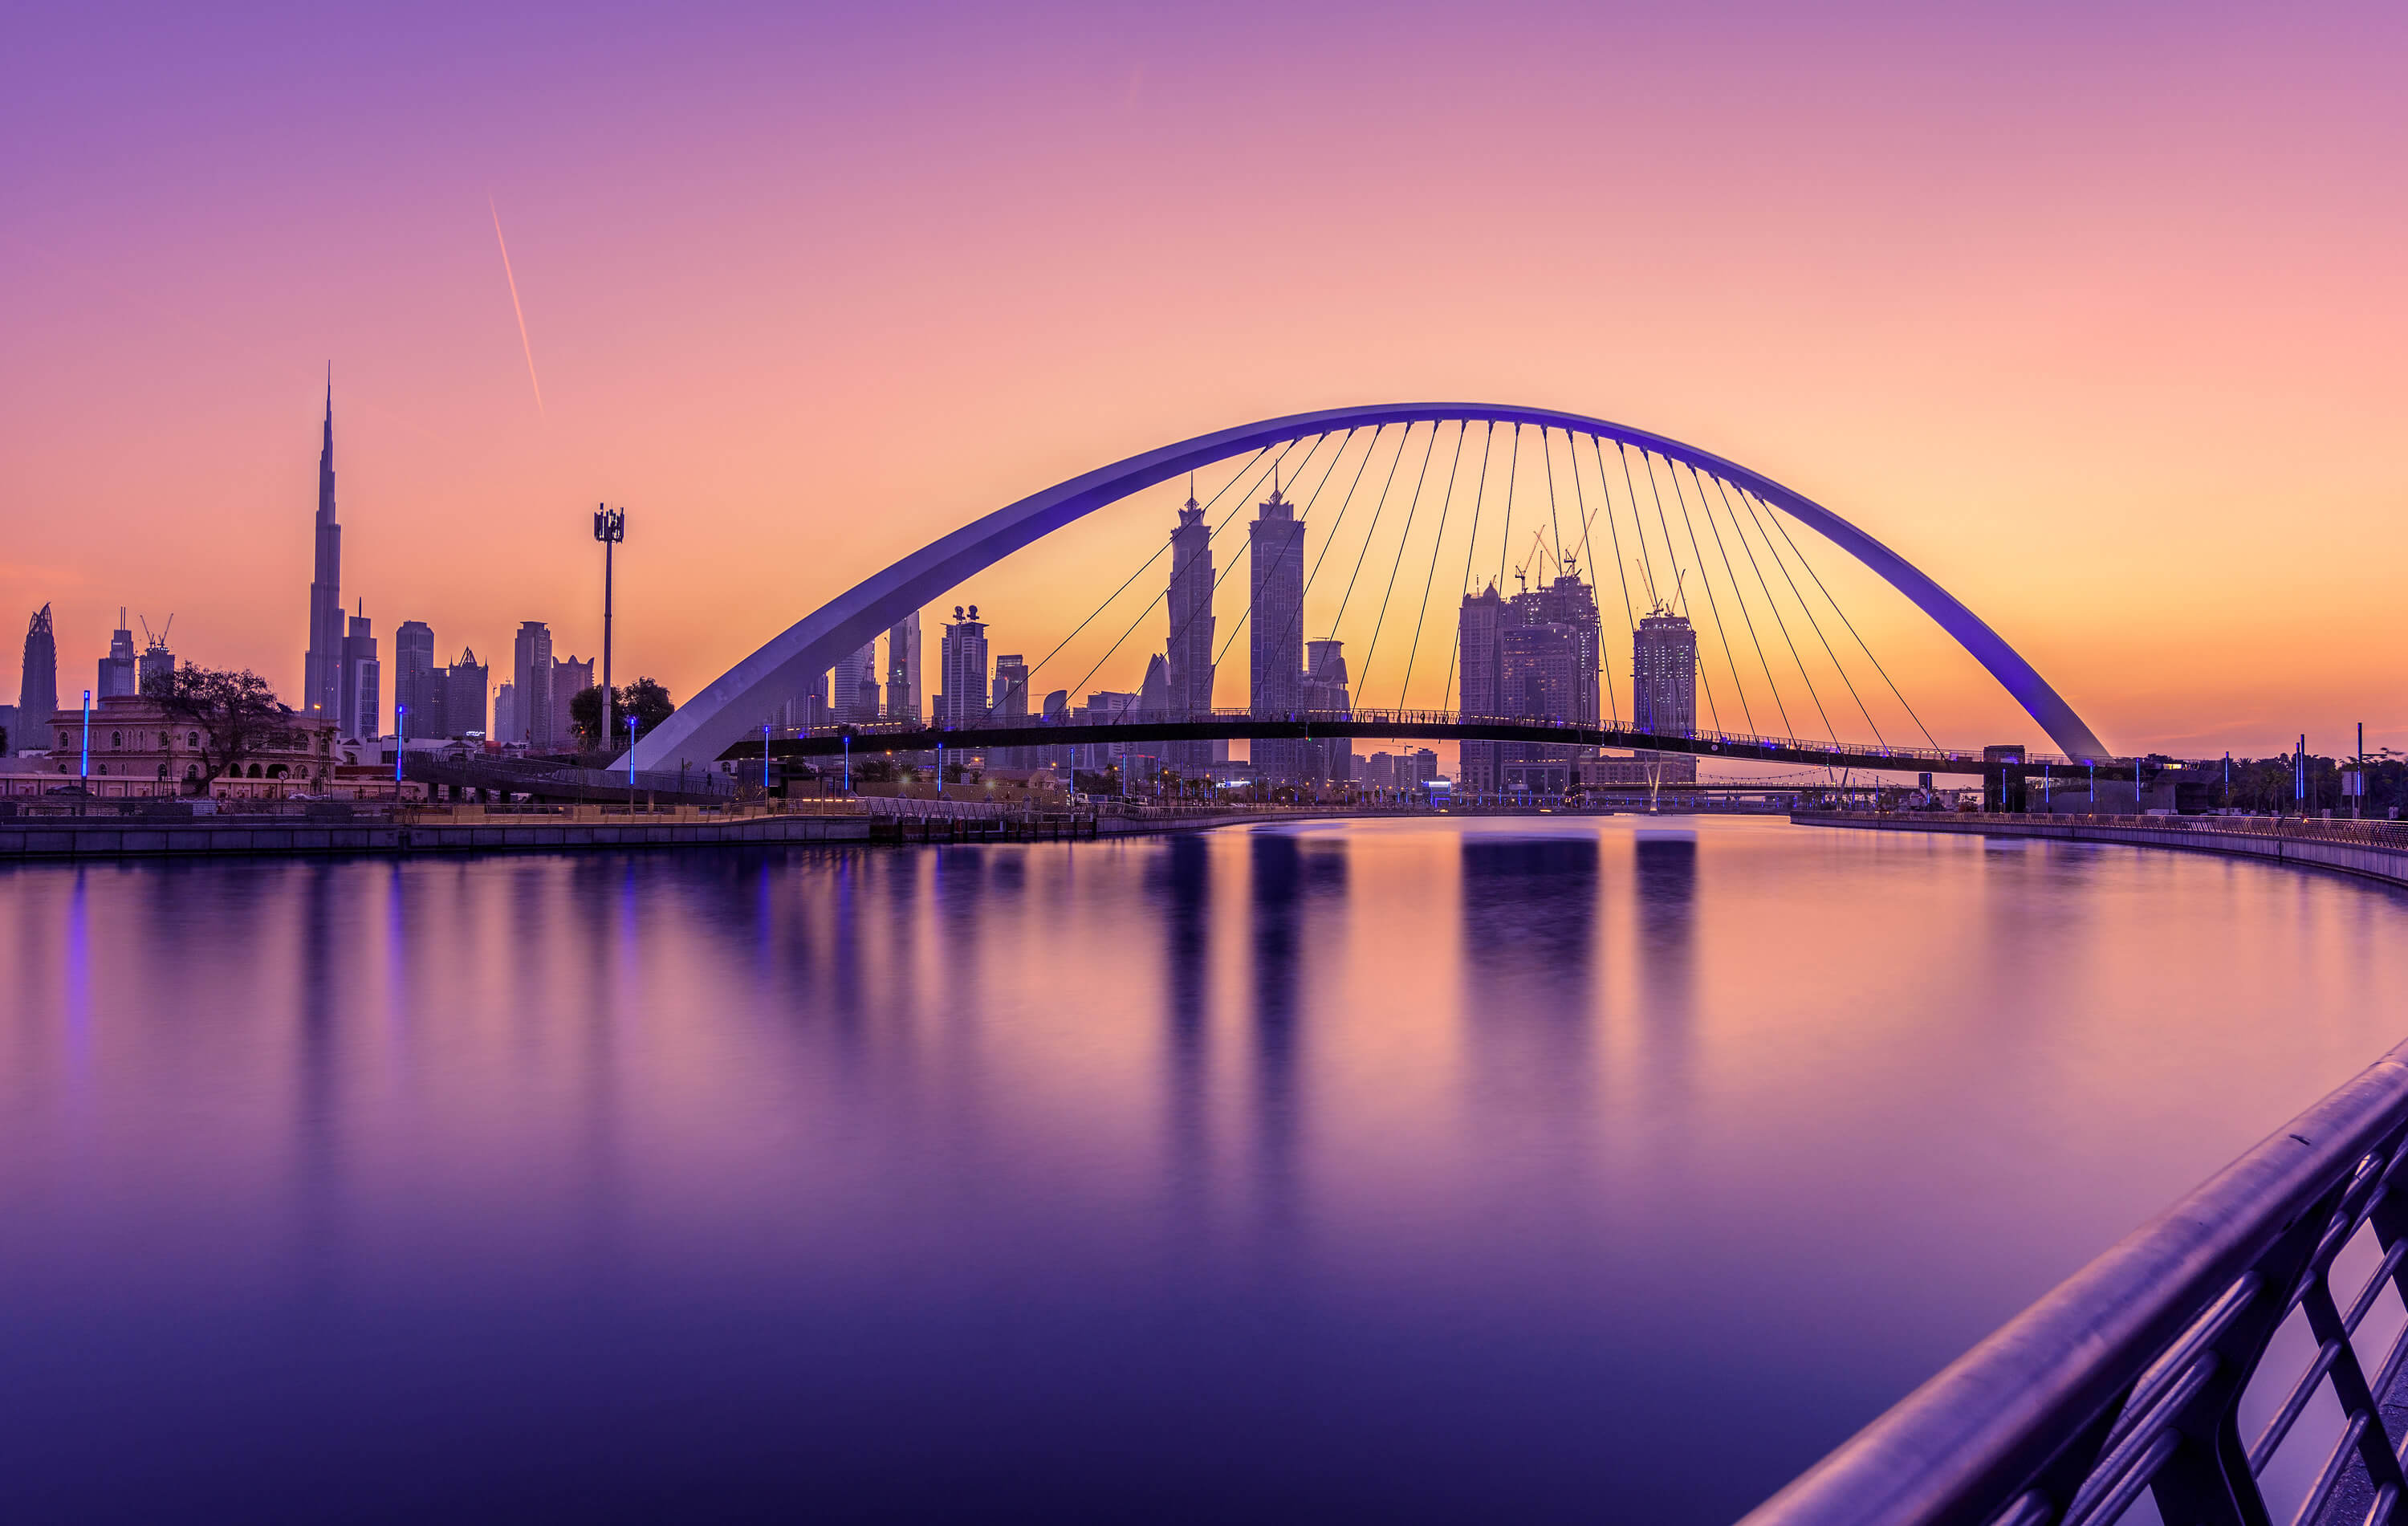 Sunrise in Dubai Canal, United Arab Emirates